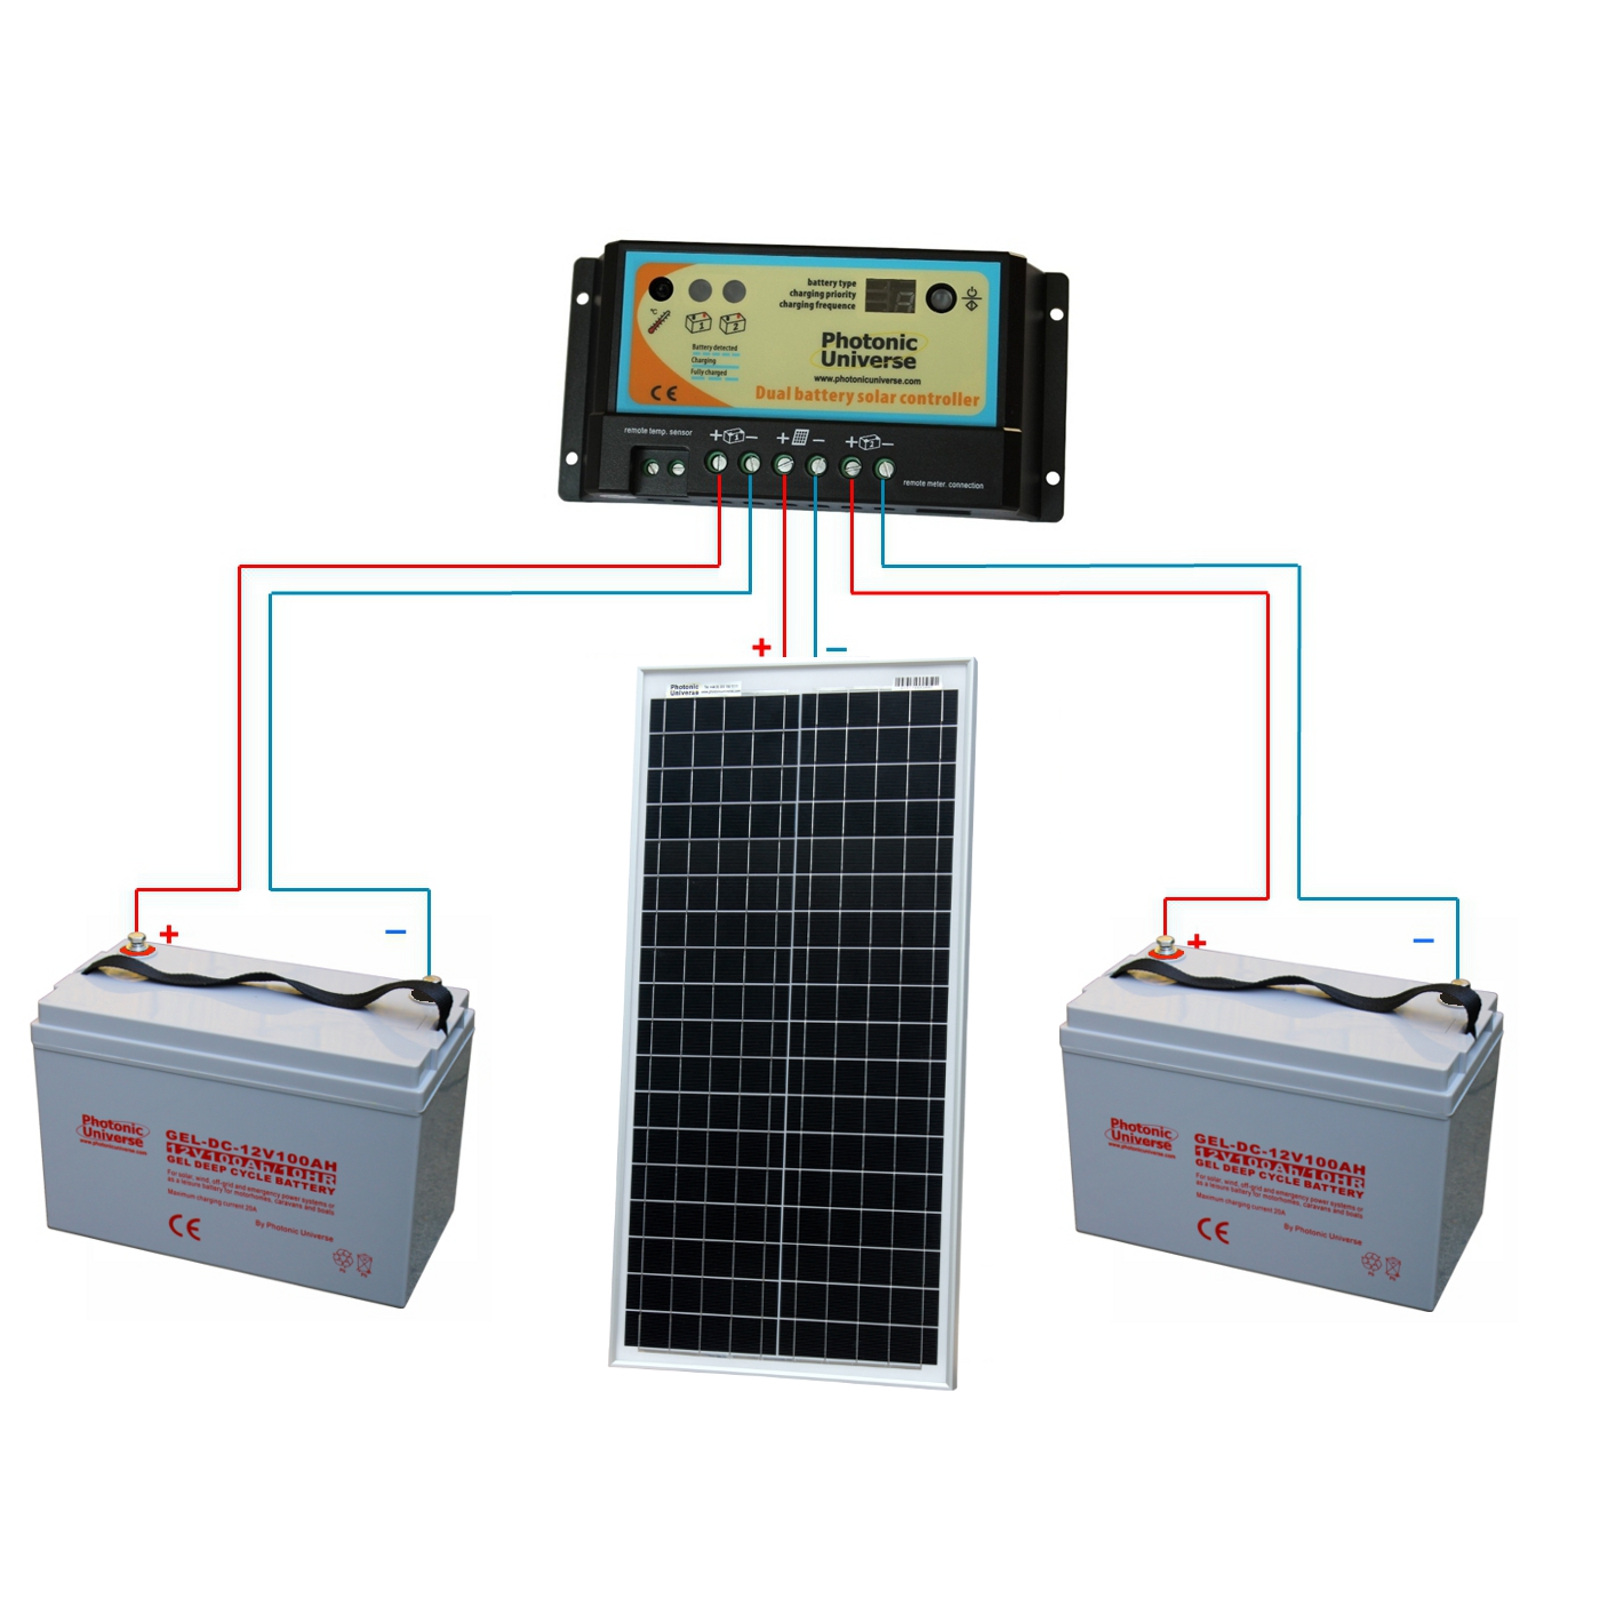 12v Solar Panels Charging Kits For Caravans Motorhomes Boats Charge Controller Wiring Diagram Connection 40w Photonic Universe Dual Battery Kit